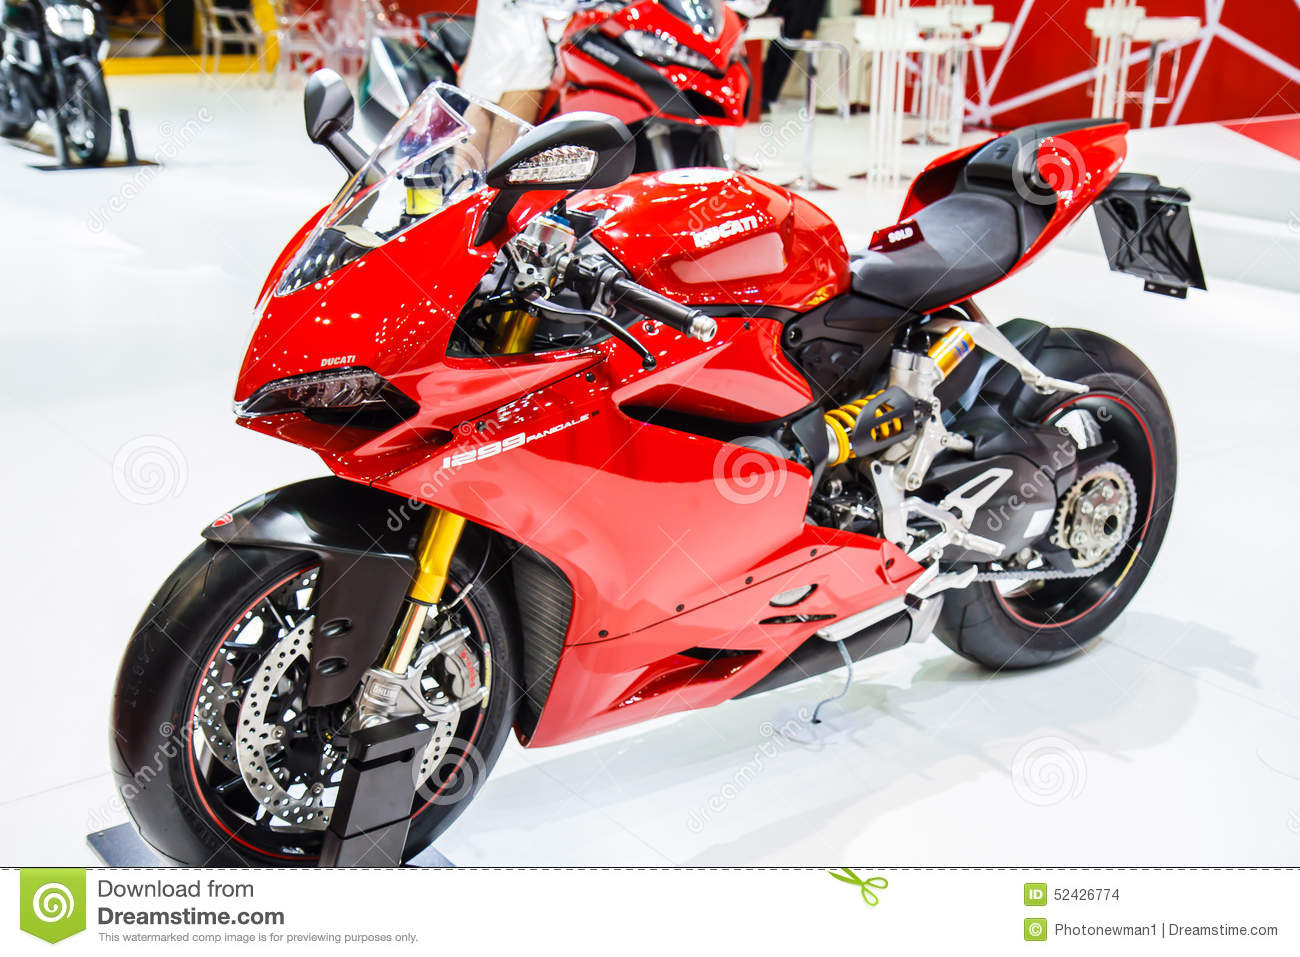 Ducati Car Shows Editorial Stock Image Image Of Model 52426774